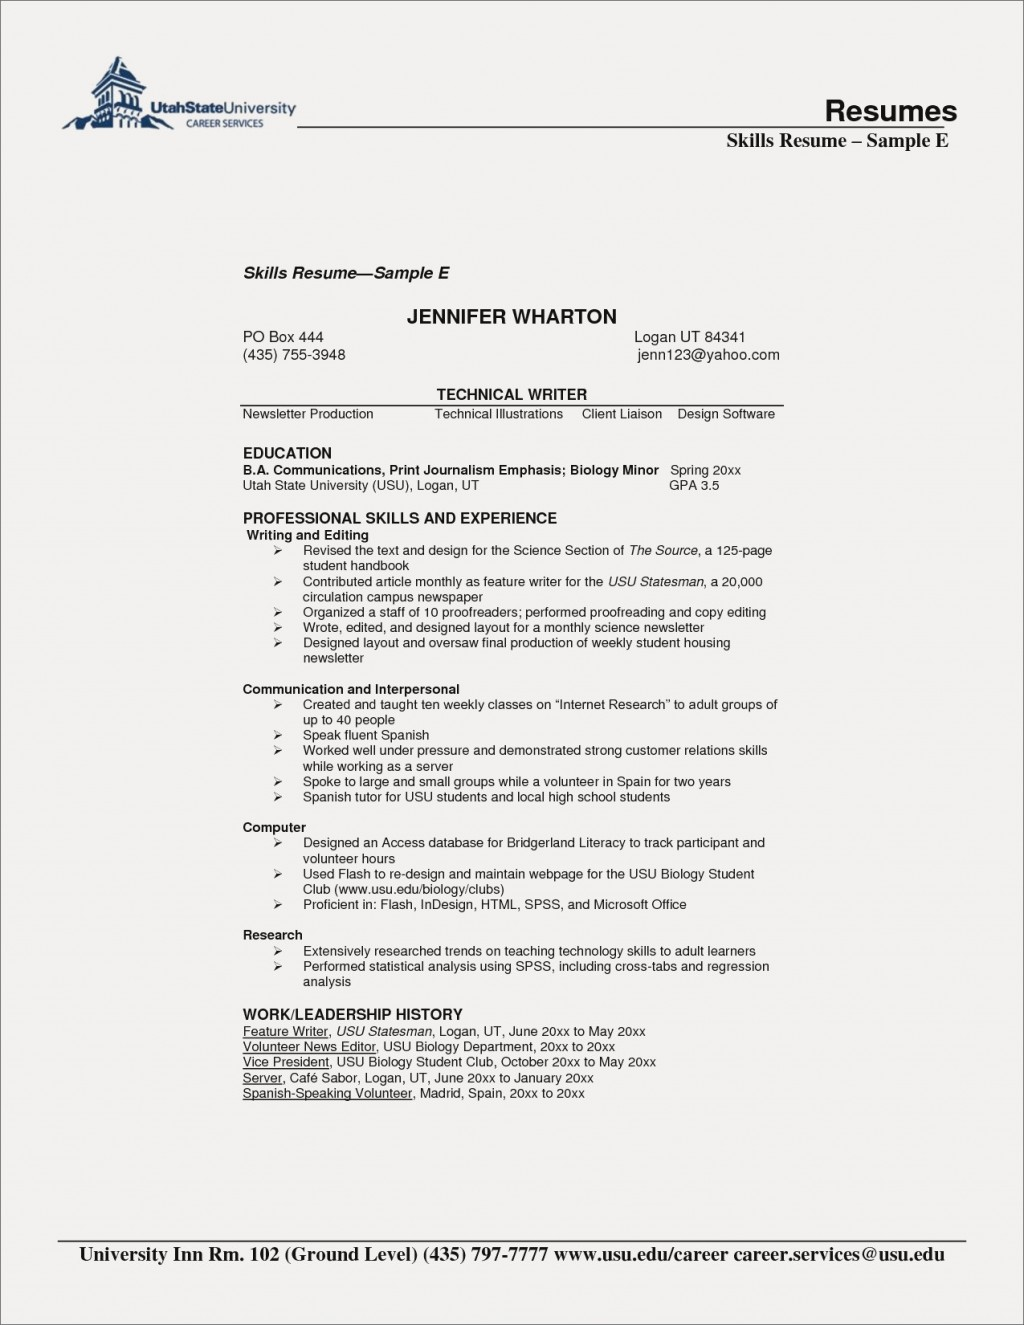 014 Biology Research Paper Lovely Resume Skills Section Example Save Puter Unique Of Remarkable Sample Format Large